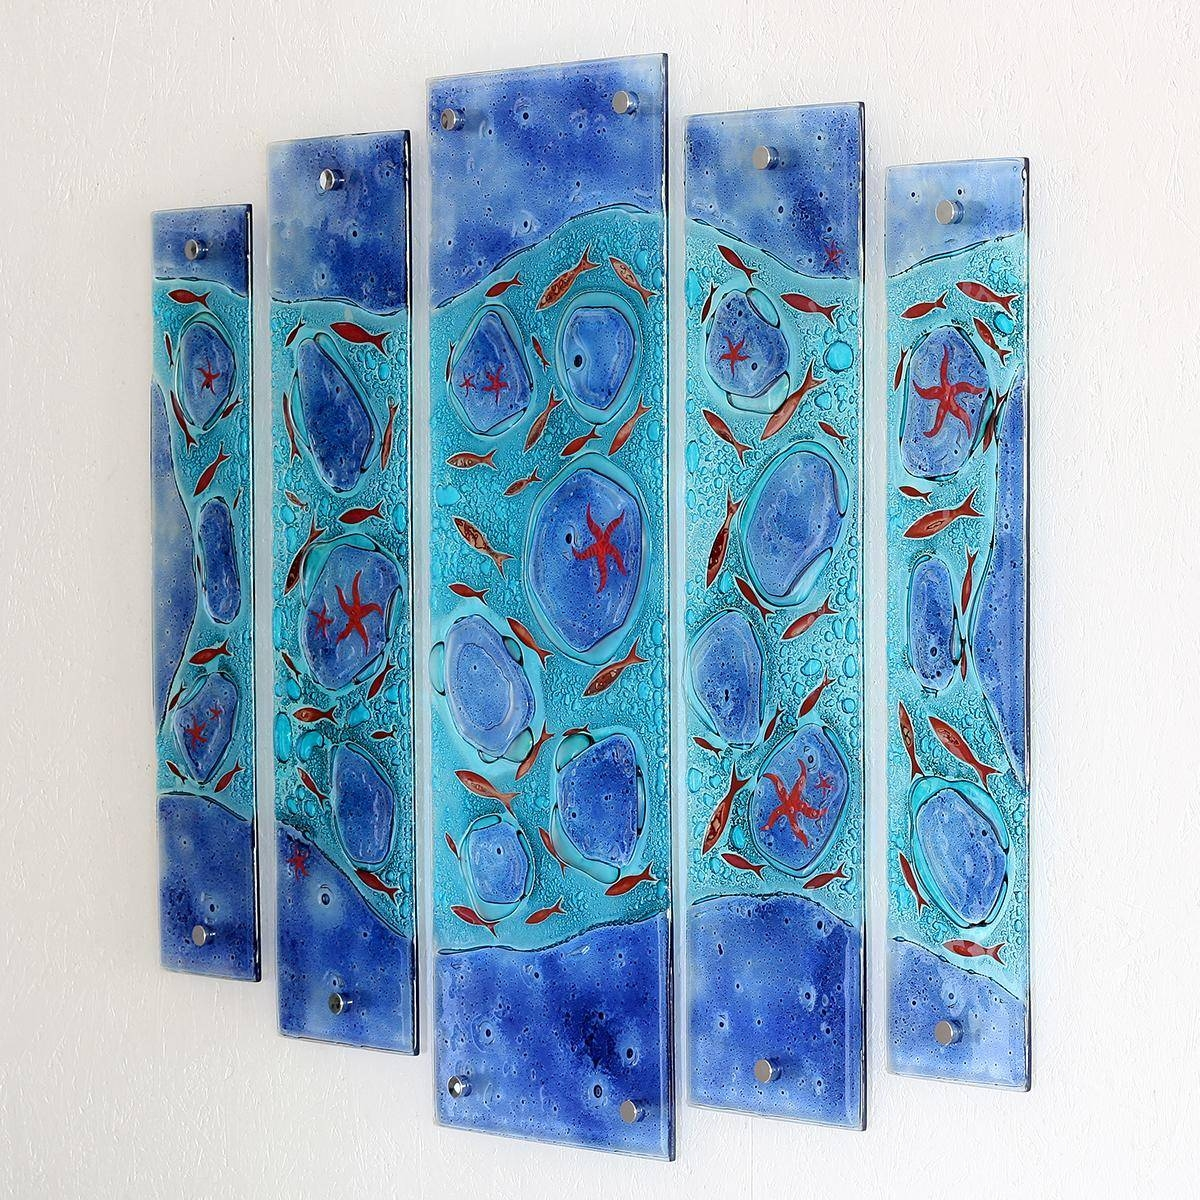 Rockpool Quintych Fused Glass Wall Artjo Downs – Jo Downs With Most Recent Fused Glass Wall Art (View 21 of 25)